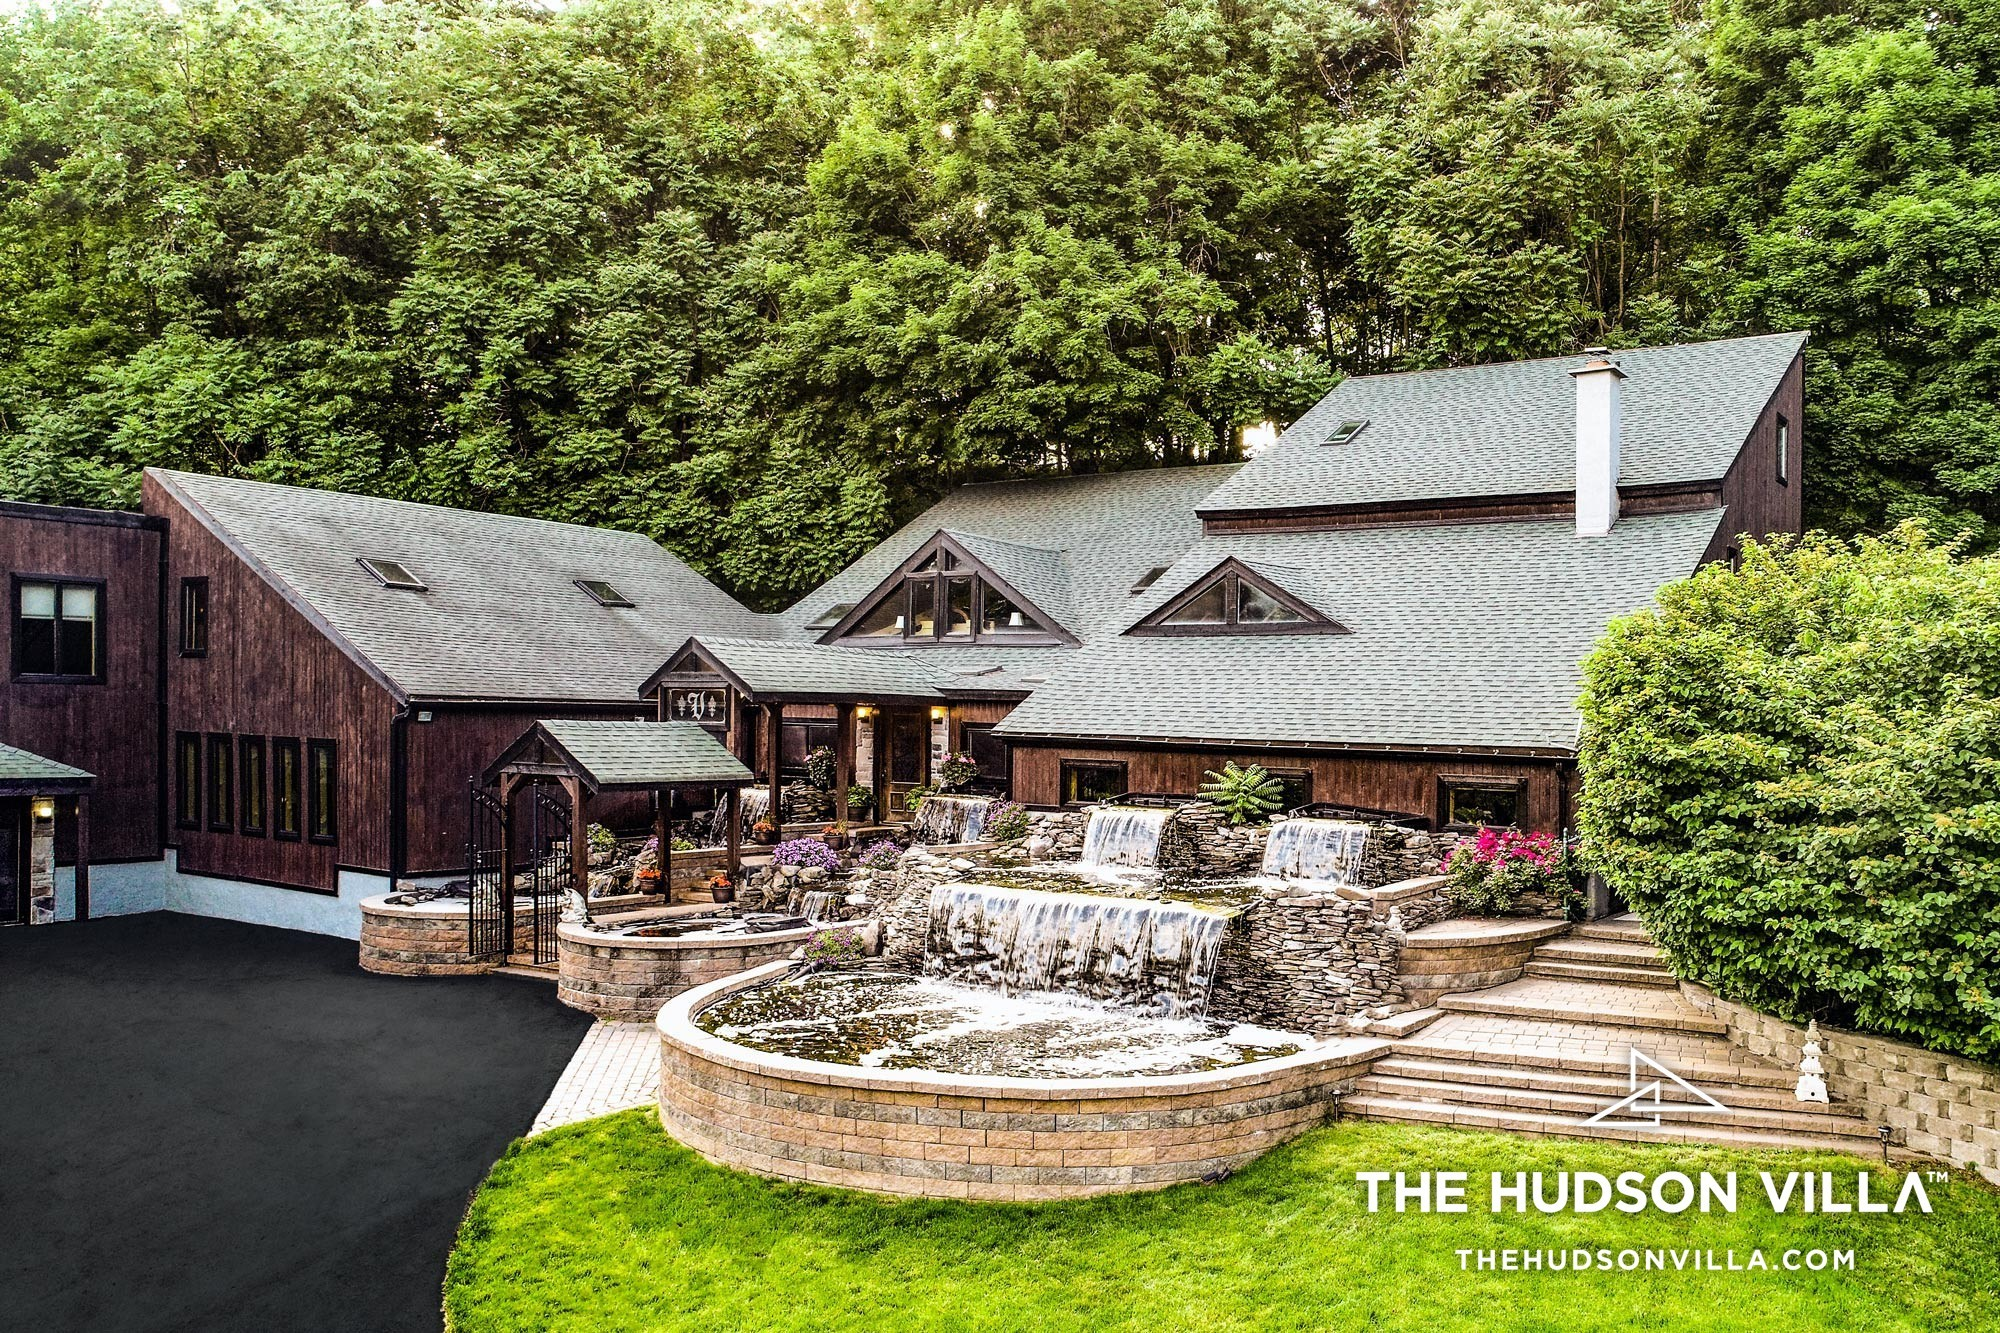 The Hudson Villa - Luxury Hudson Valley Villa for Sale in Chester, NY